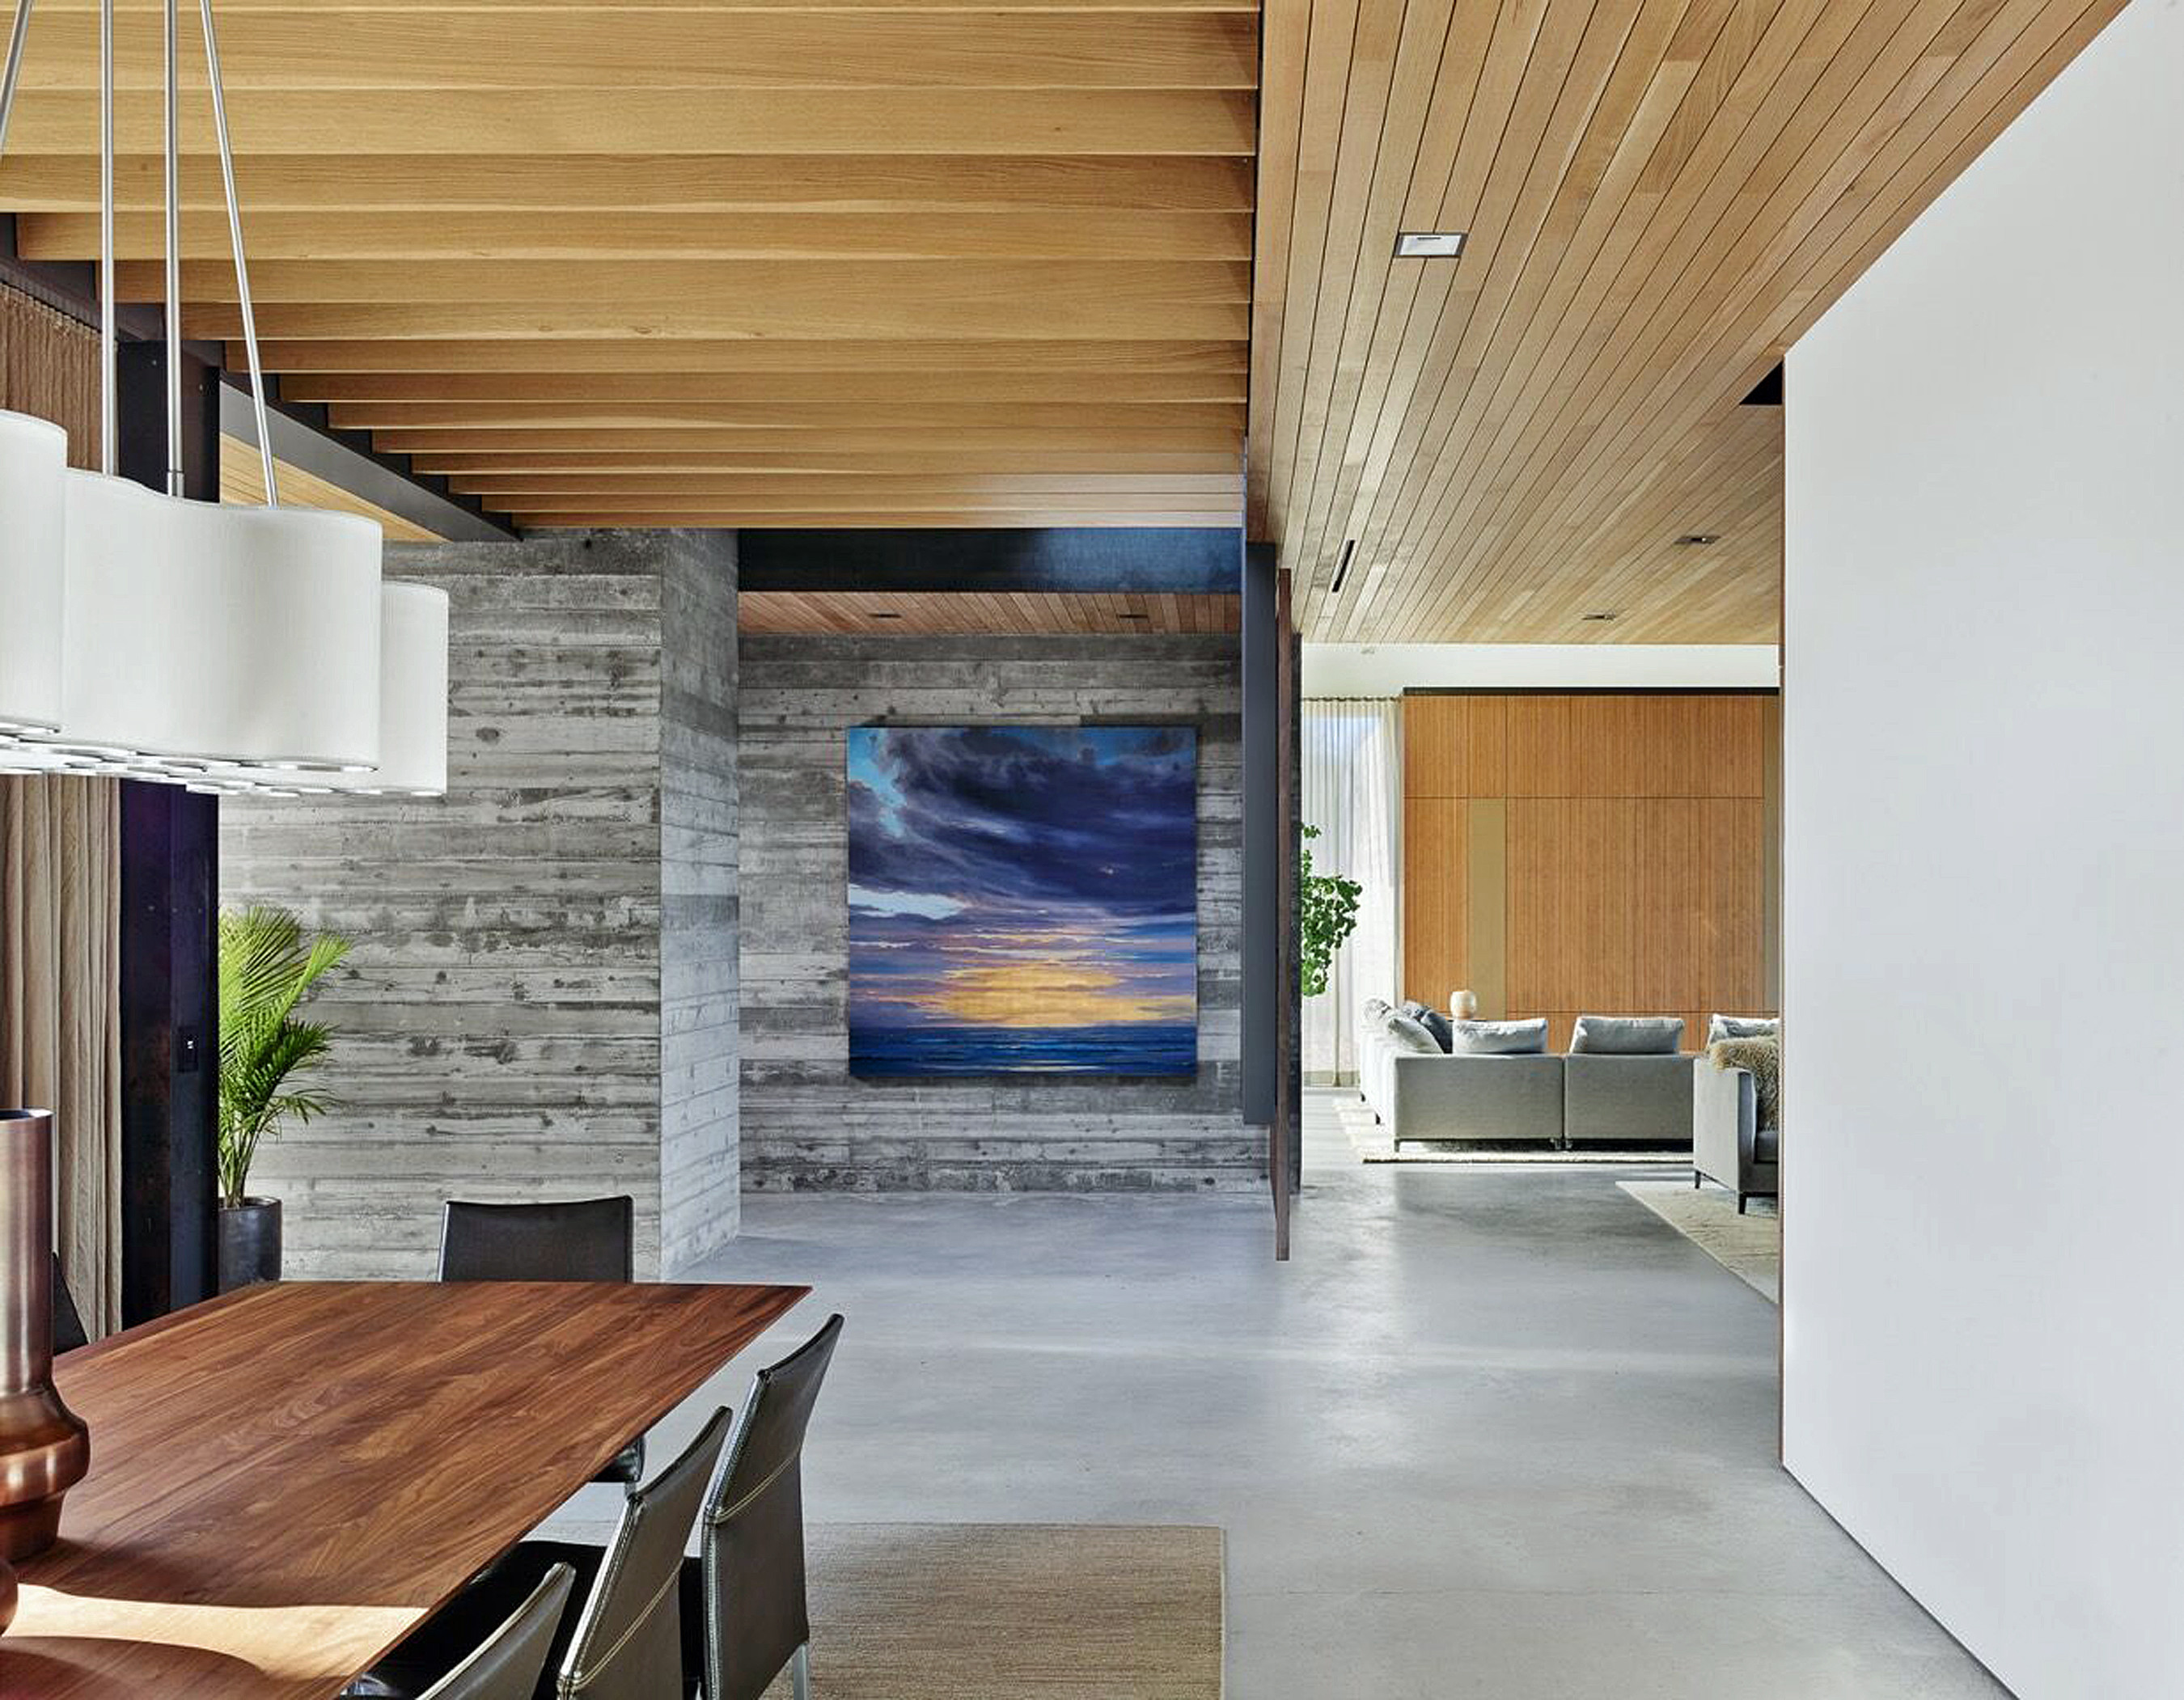 hardwood on concrete basement floor of tips for building with board form concrete jlc online walls throughout tips for building with board form concrete jlc online walls decorative concrete concrete surfaces walls and ceilings